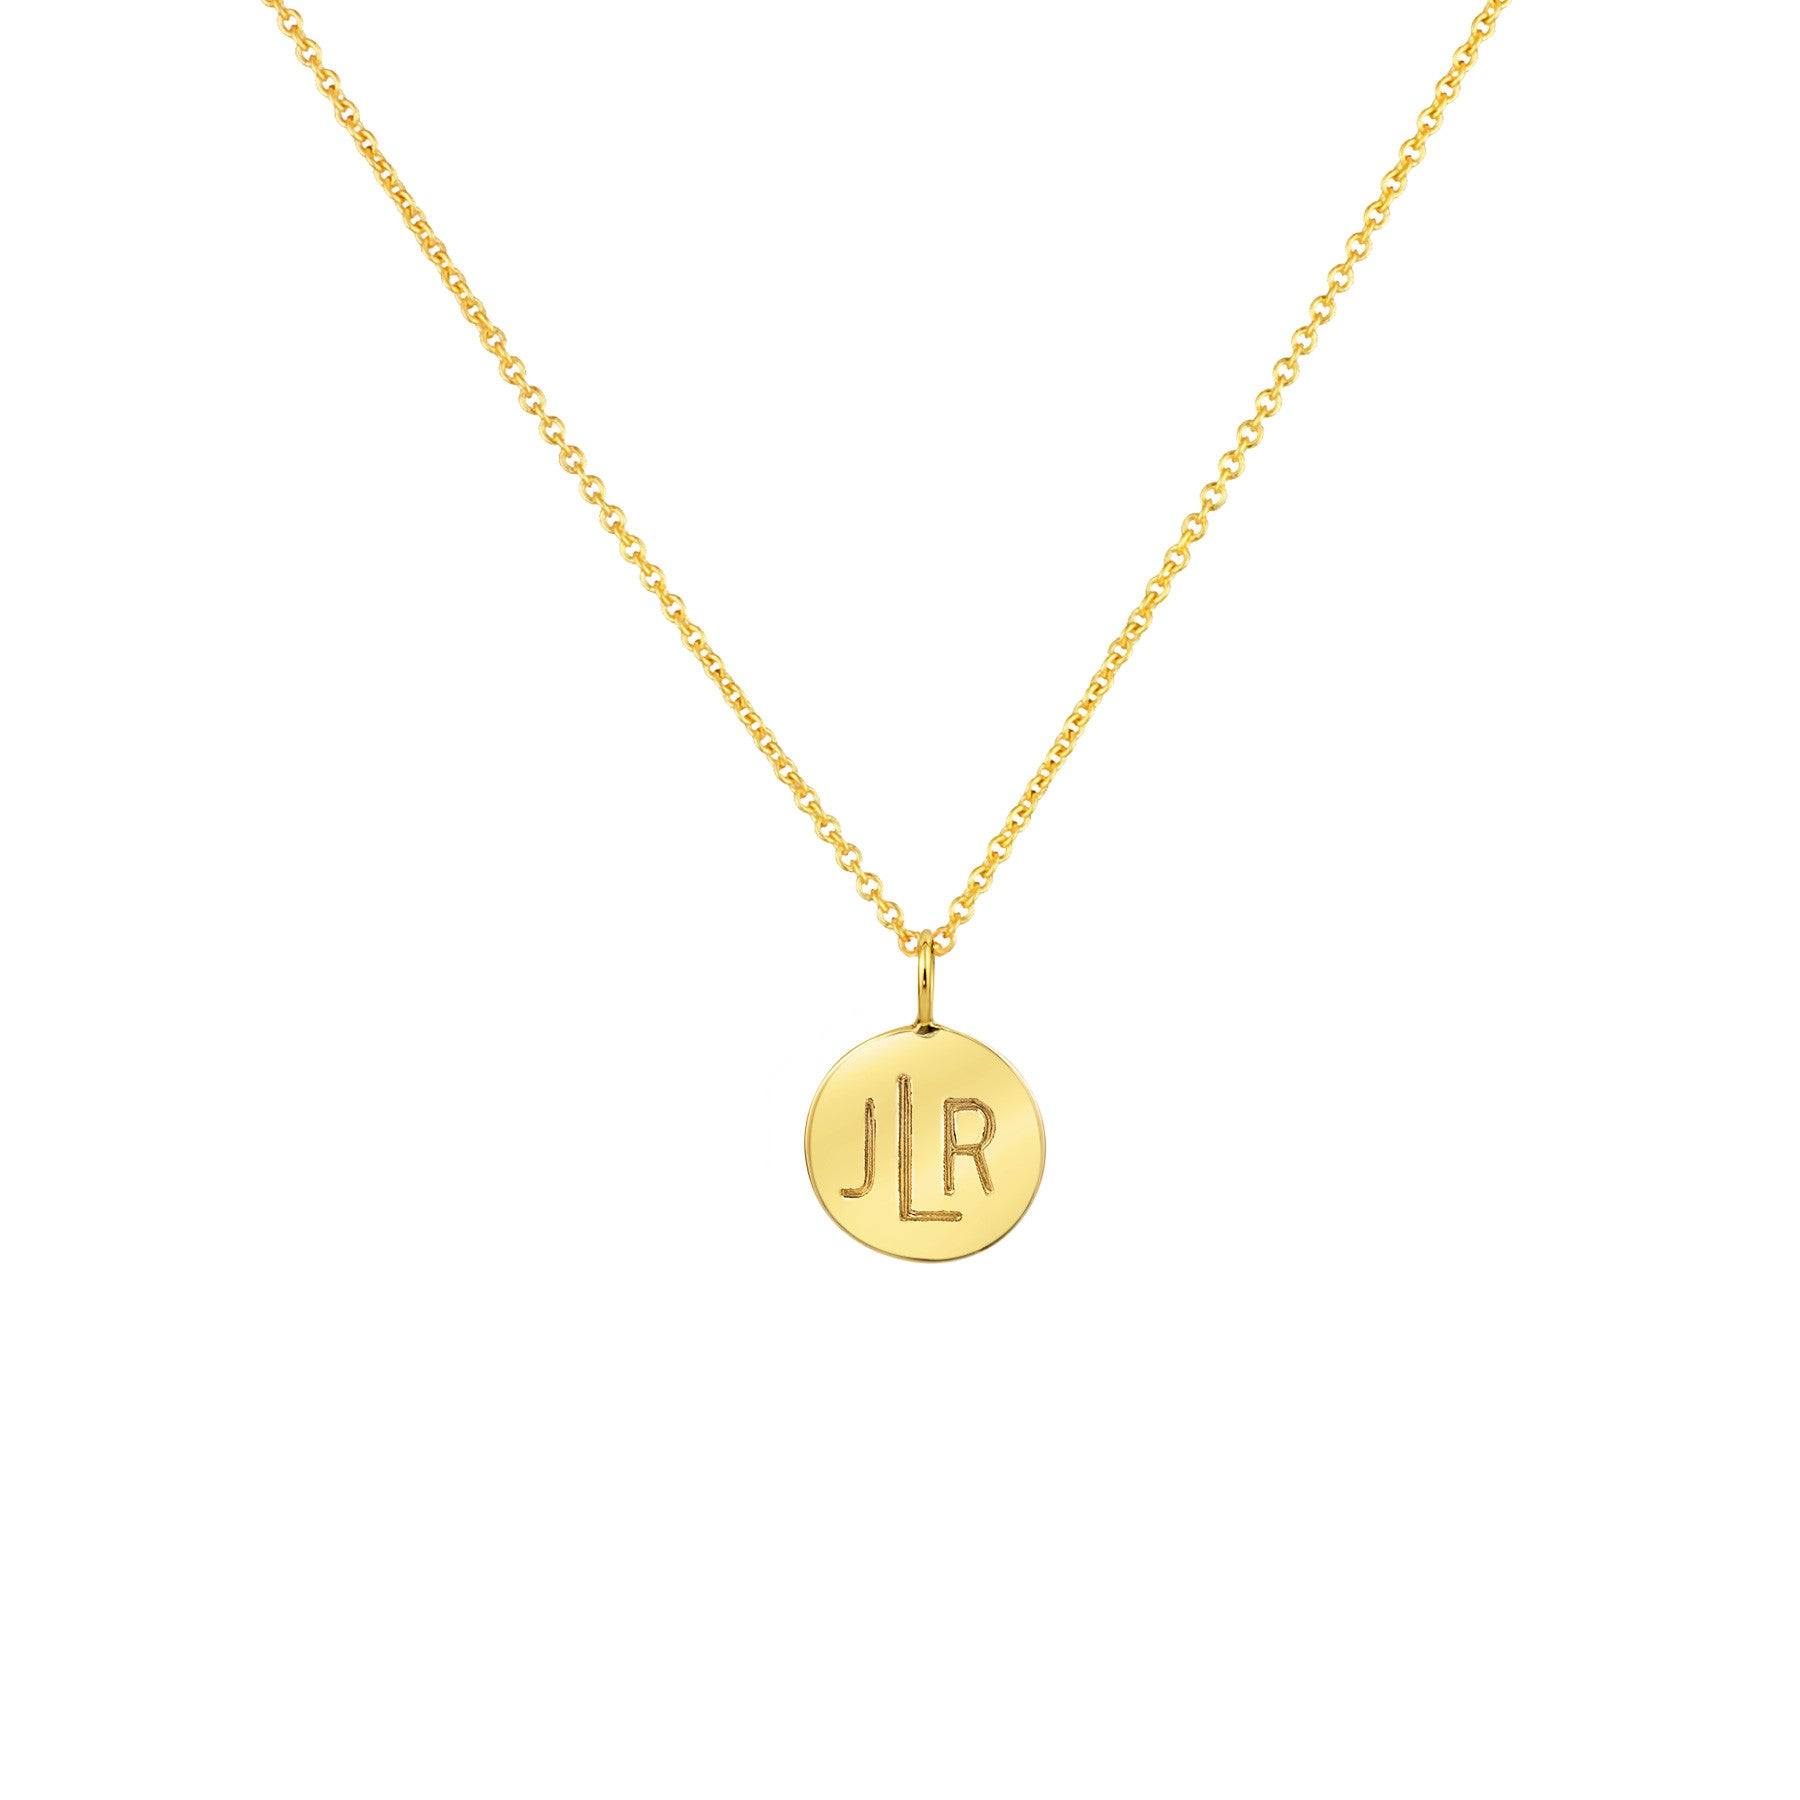 LARGE CIRCLE MONOGRAM NECKLACE 14K